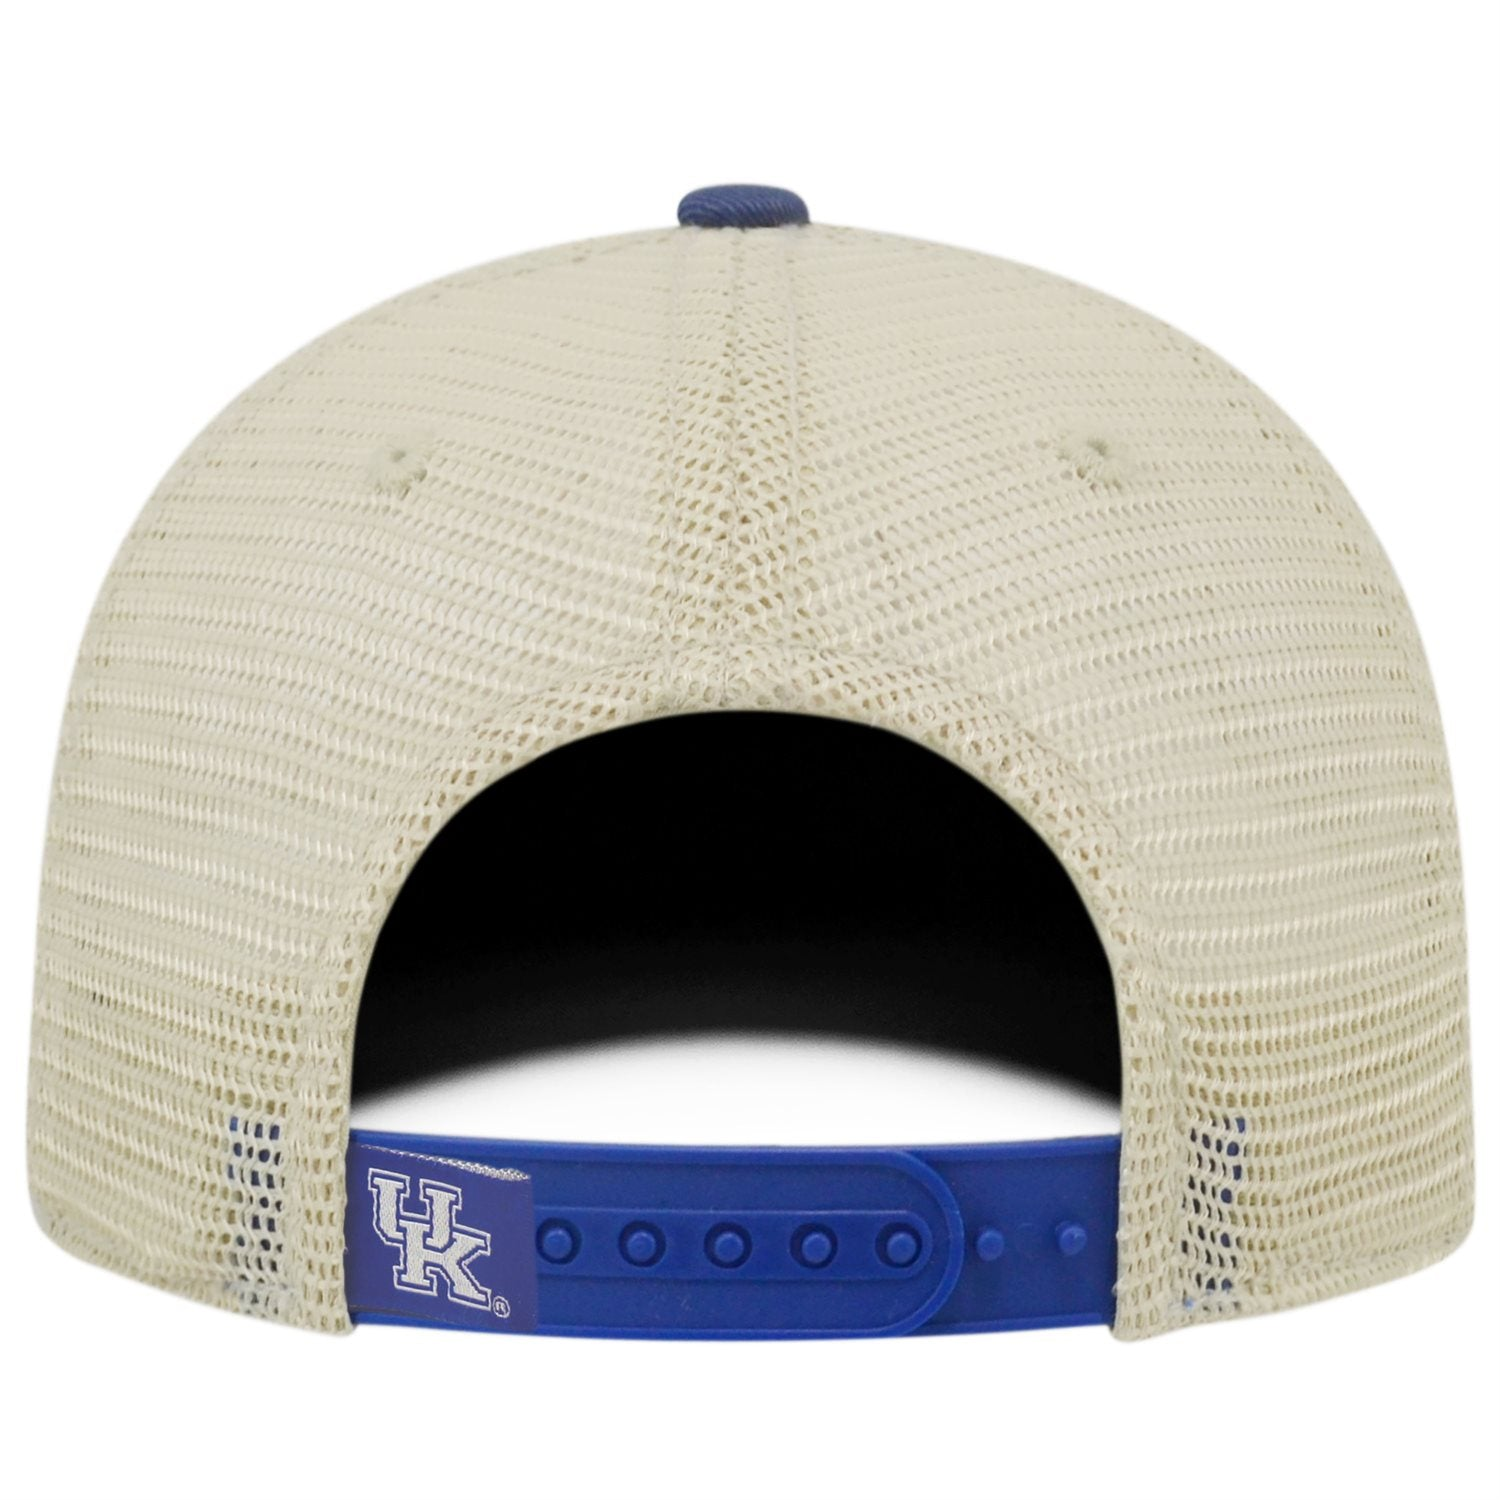 Kentucky Wildcats Adjustable Three-Tone Offroad Hat